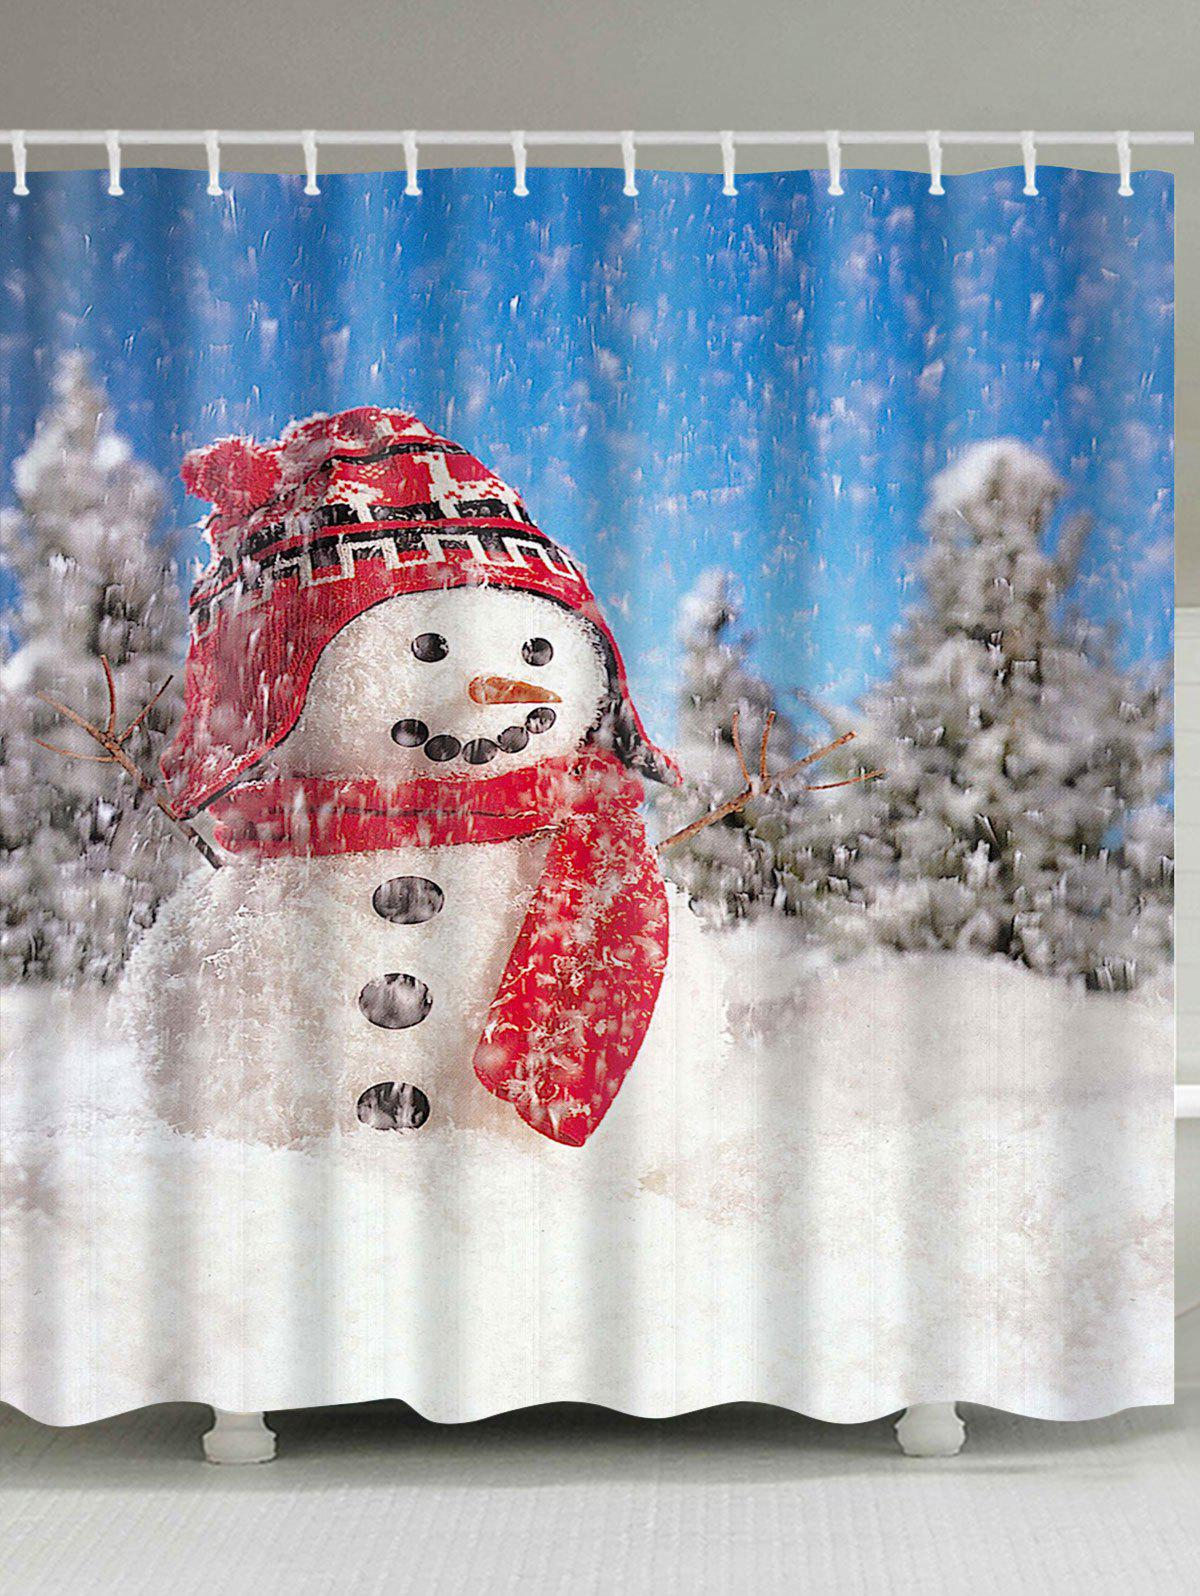 Christmas Snowman Pattern Waterproof Polyester Shower Curtain waterproof christmas snowman pine pattern shower curtain